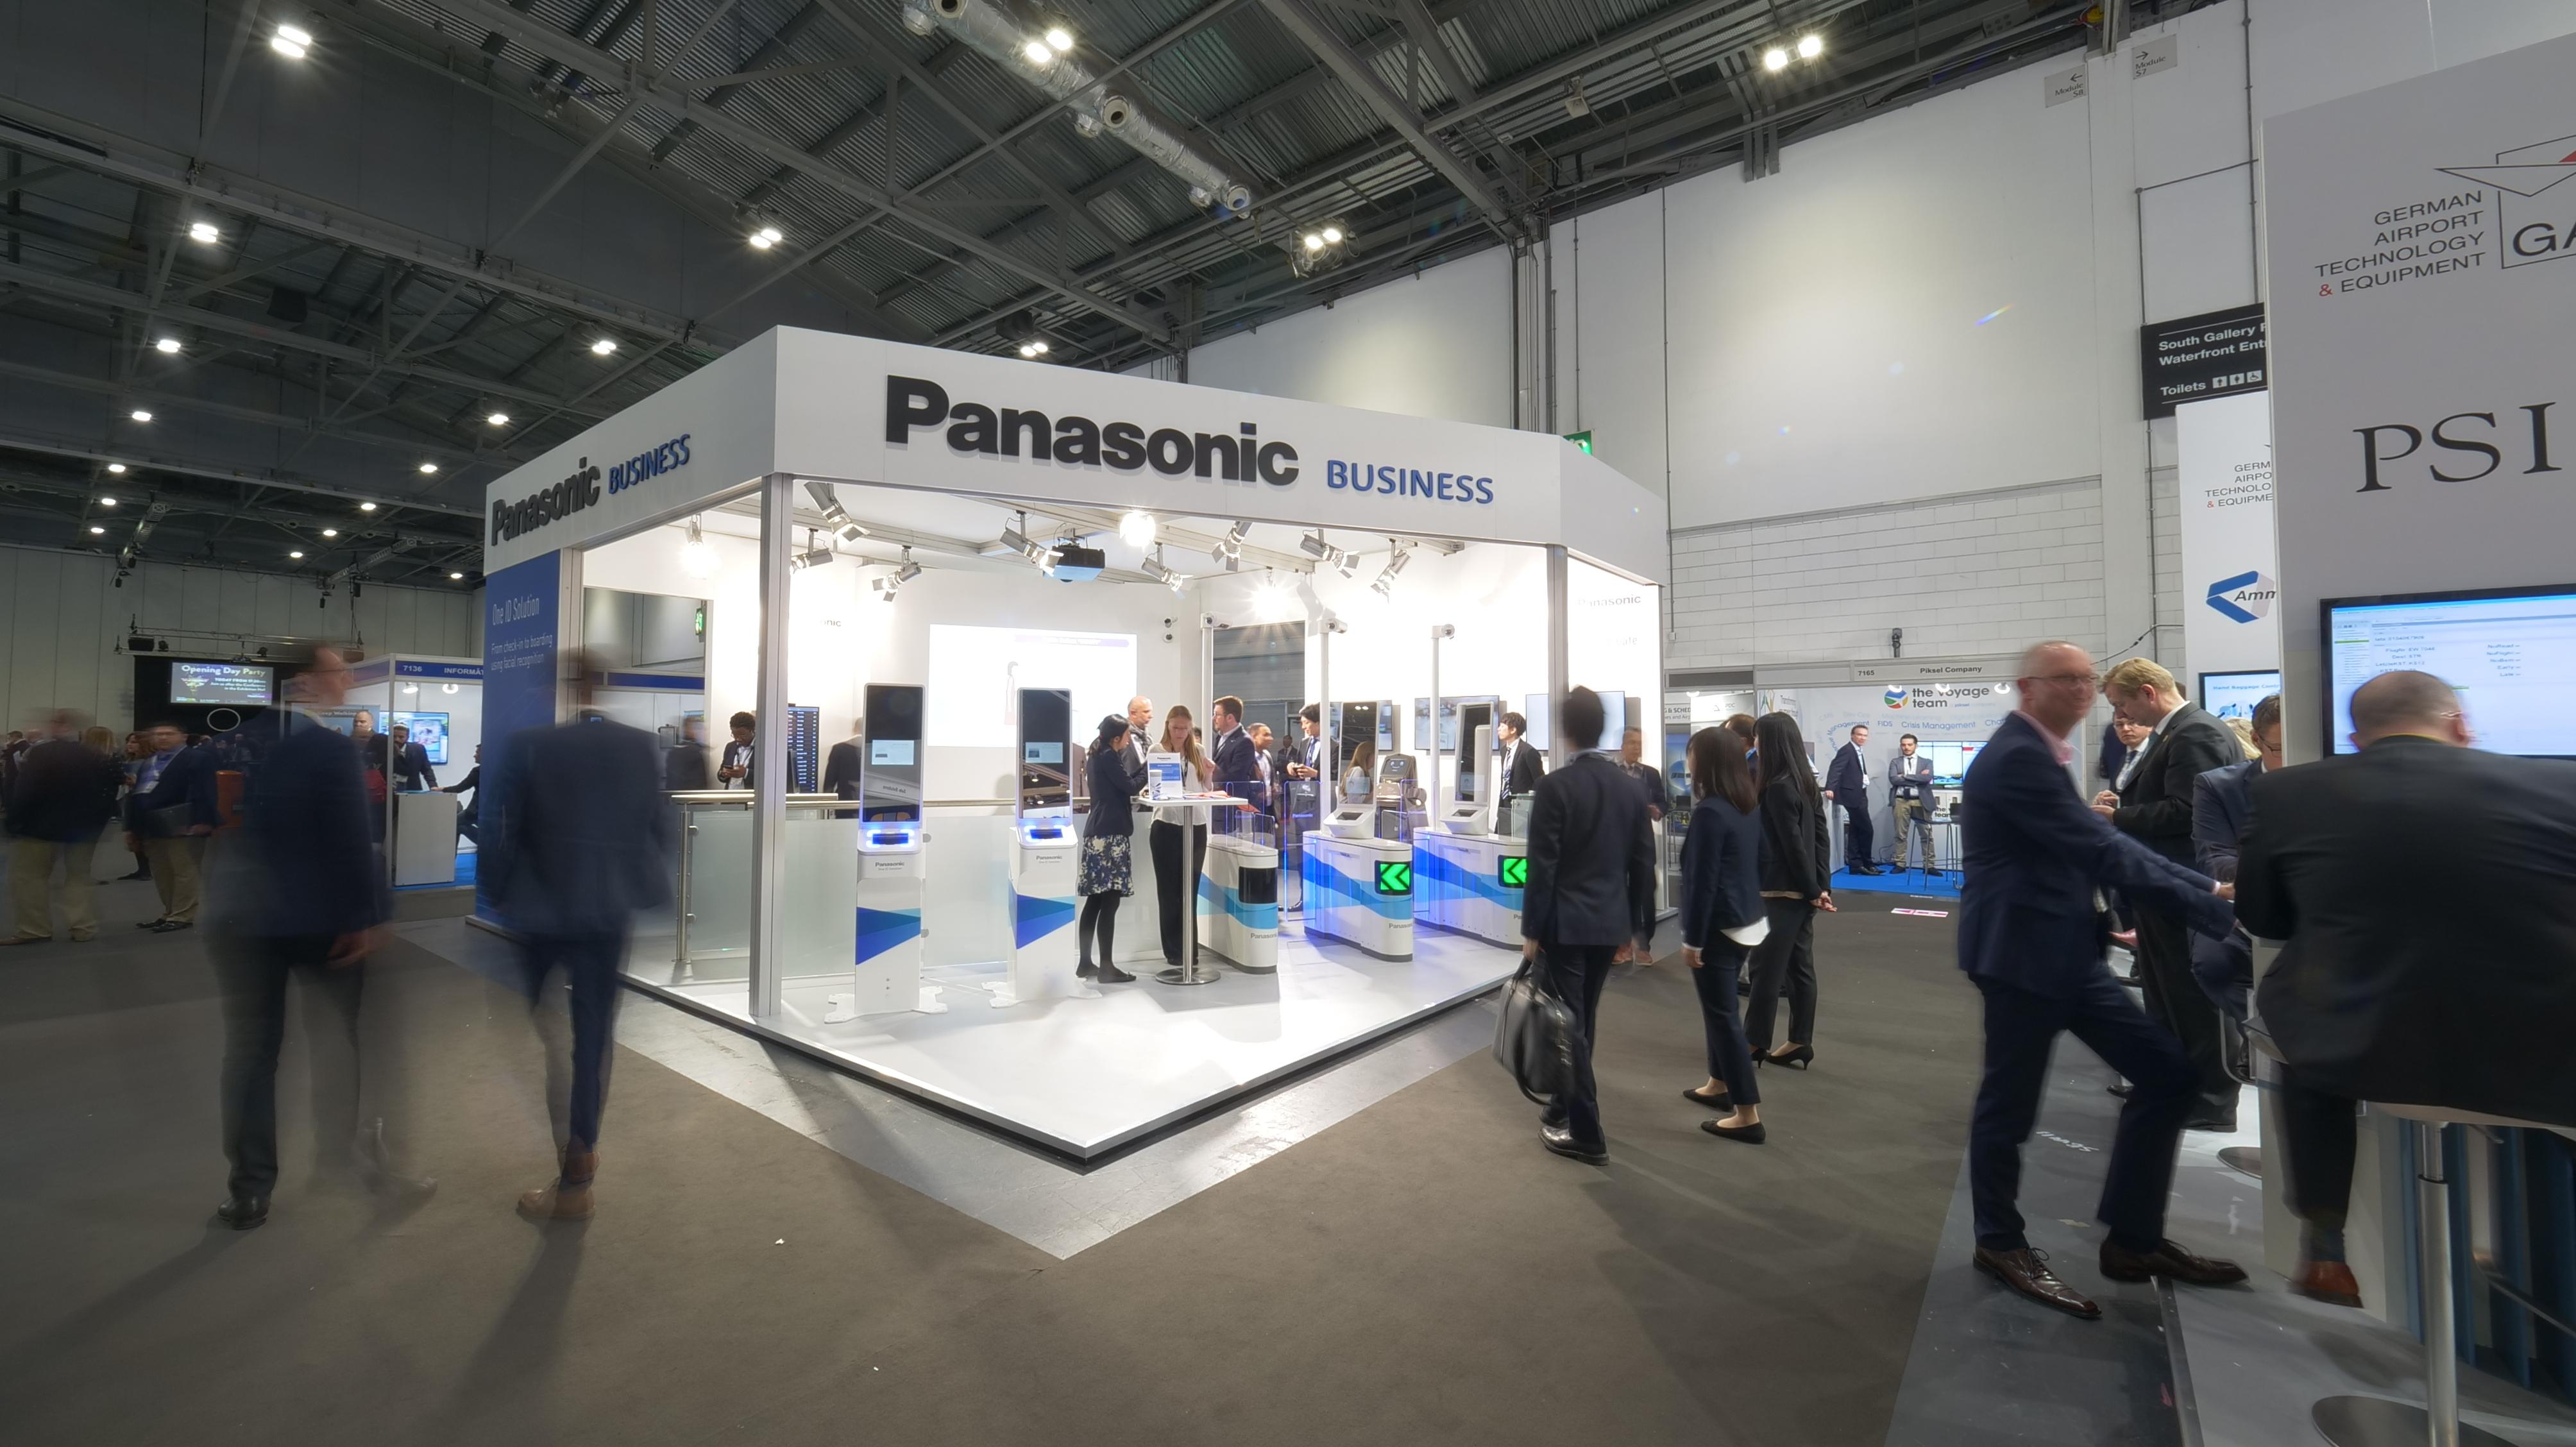 photo: the Panasonic booth at the passenger terminal expo 2019